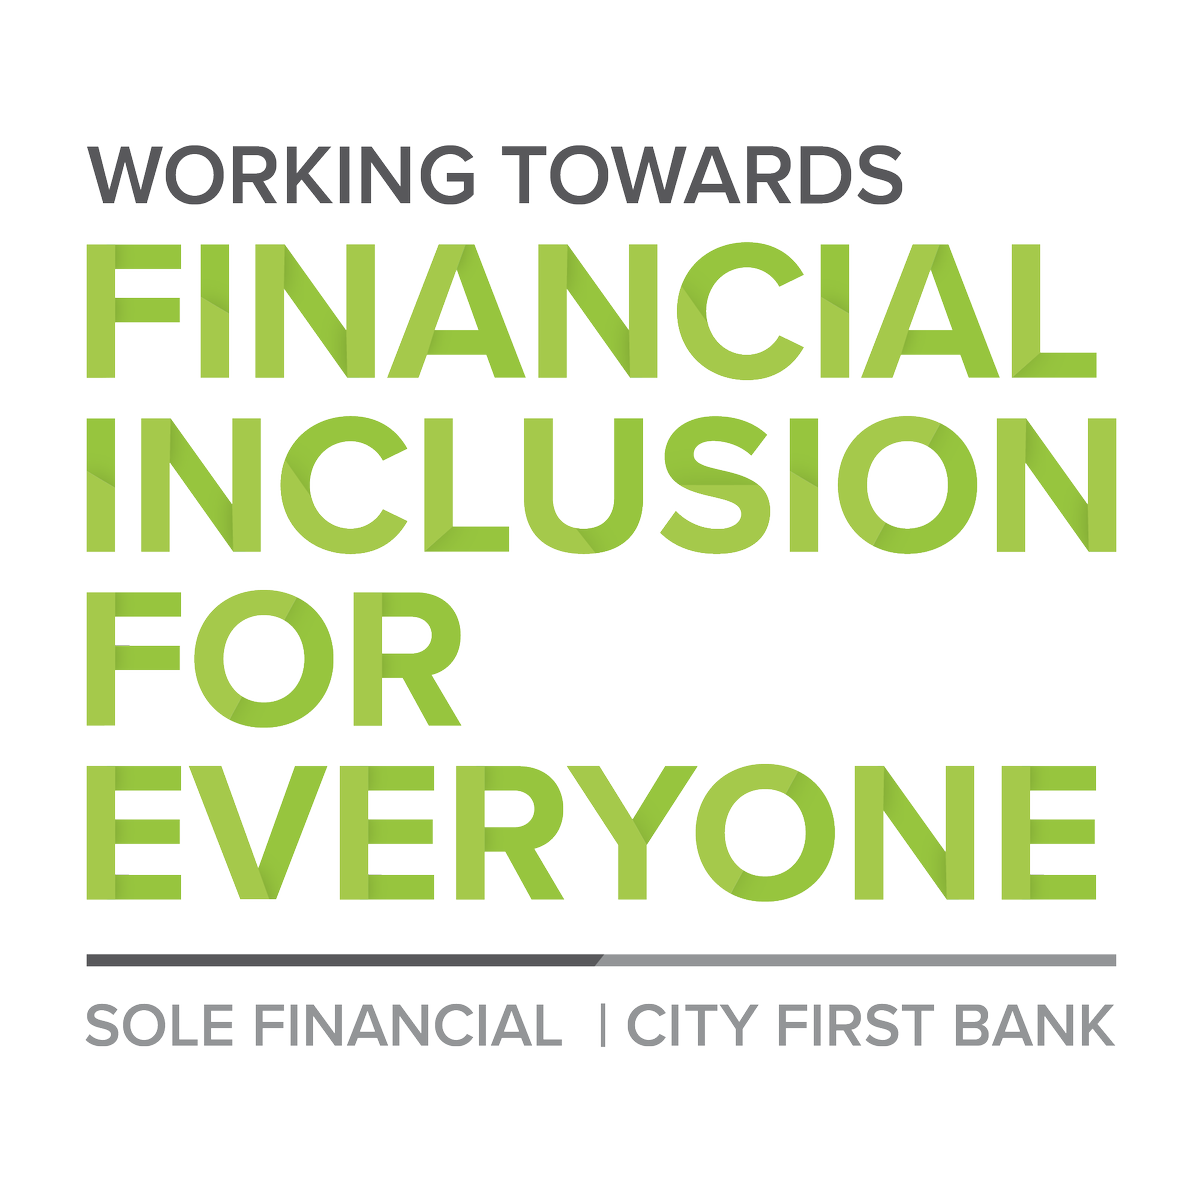 Our partnership with City First Bank of D.C. will bring paycards to unbanked workers in D.C.:   https://www. newswire.com/news/sole-fina ncial-partners-with-city-first-bank-of-d-c-to-advance-20011637 &nbsp; …  #financialinclusion <br>http://pic.twitter.com/Fw0EgpYWE0